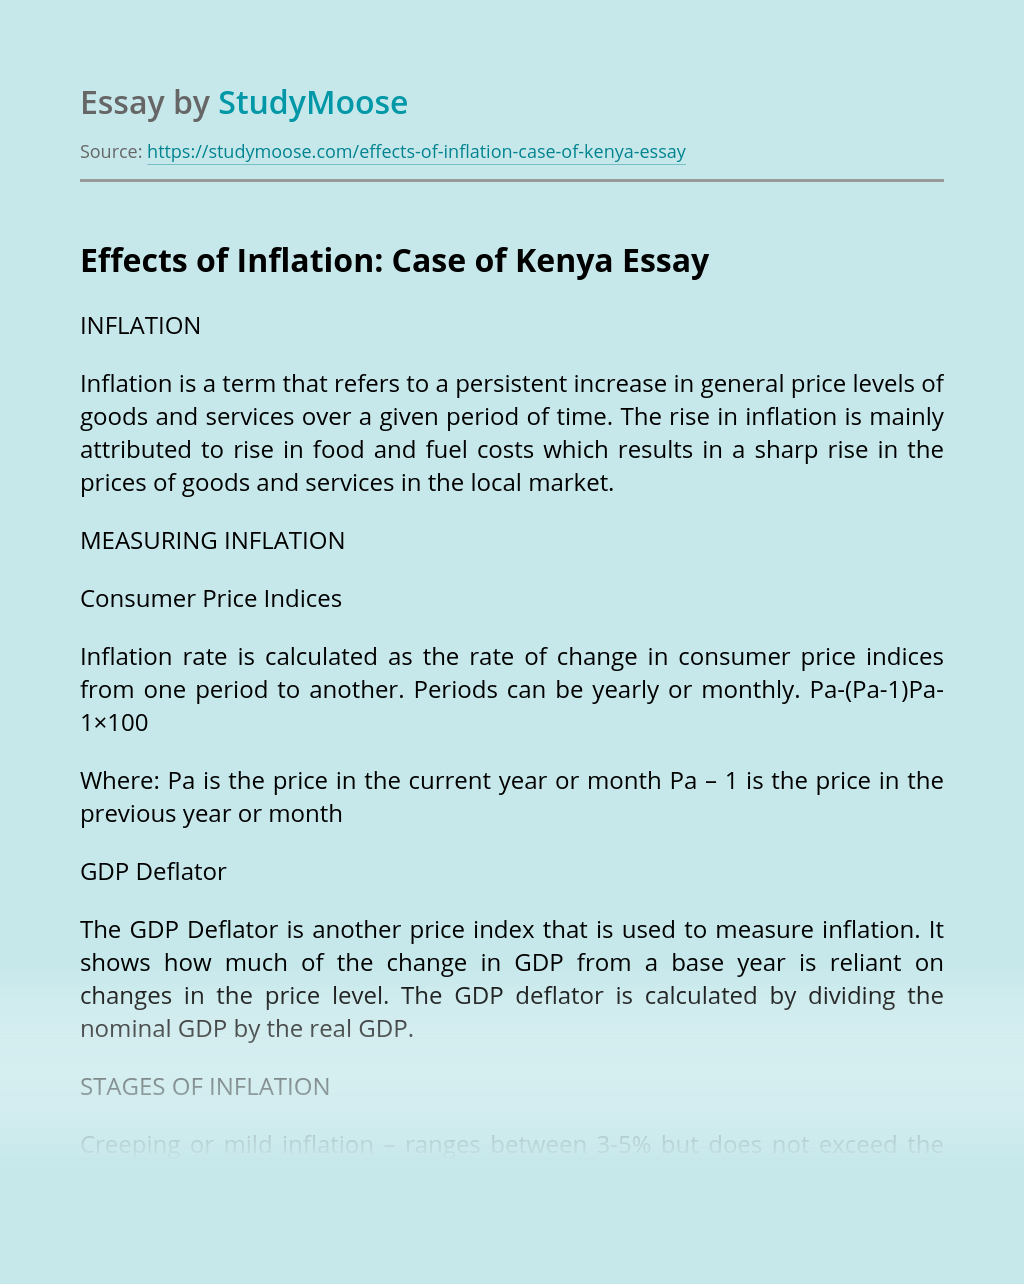 Effects of Inflation: Case of Kenya